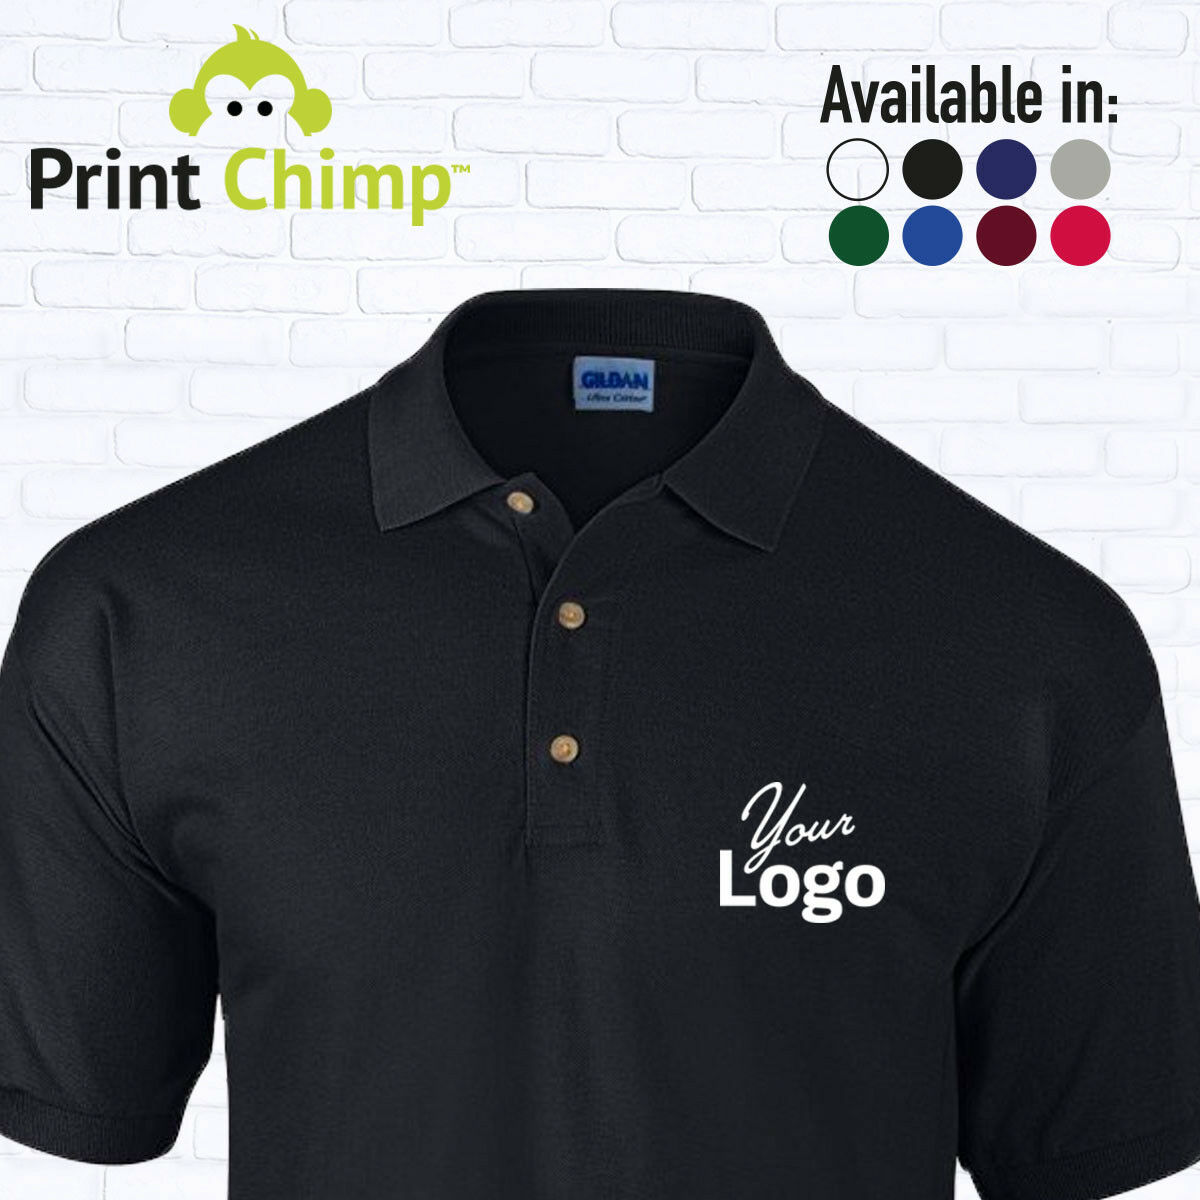 Personalised Polo Shirt Printed With Your Logo Customised Workwear